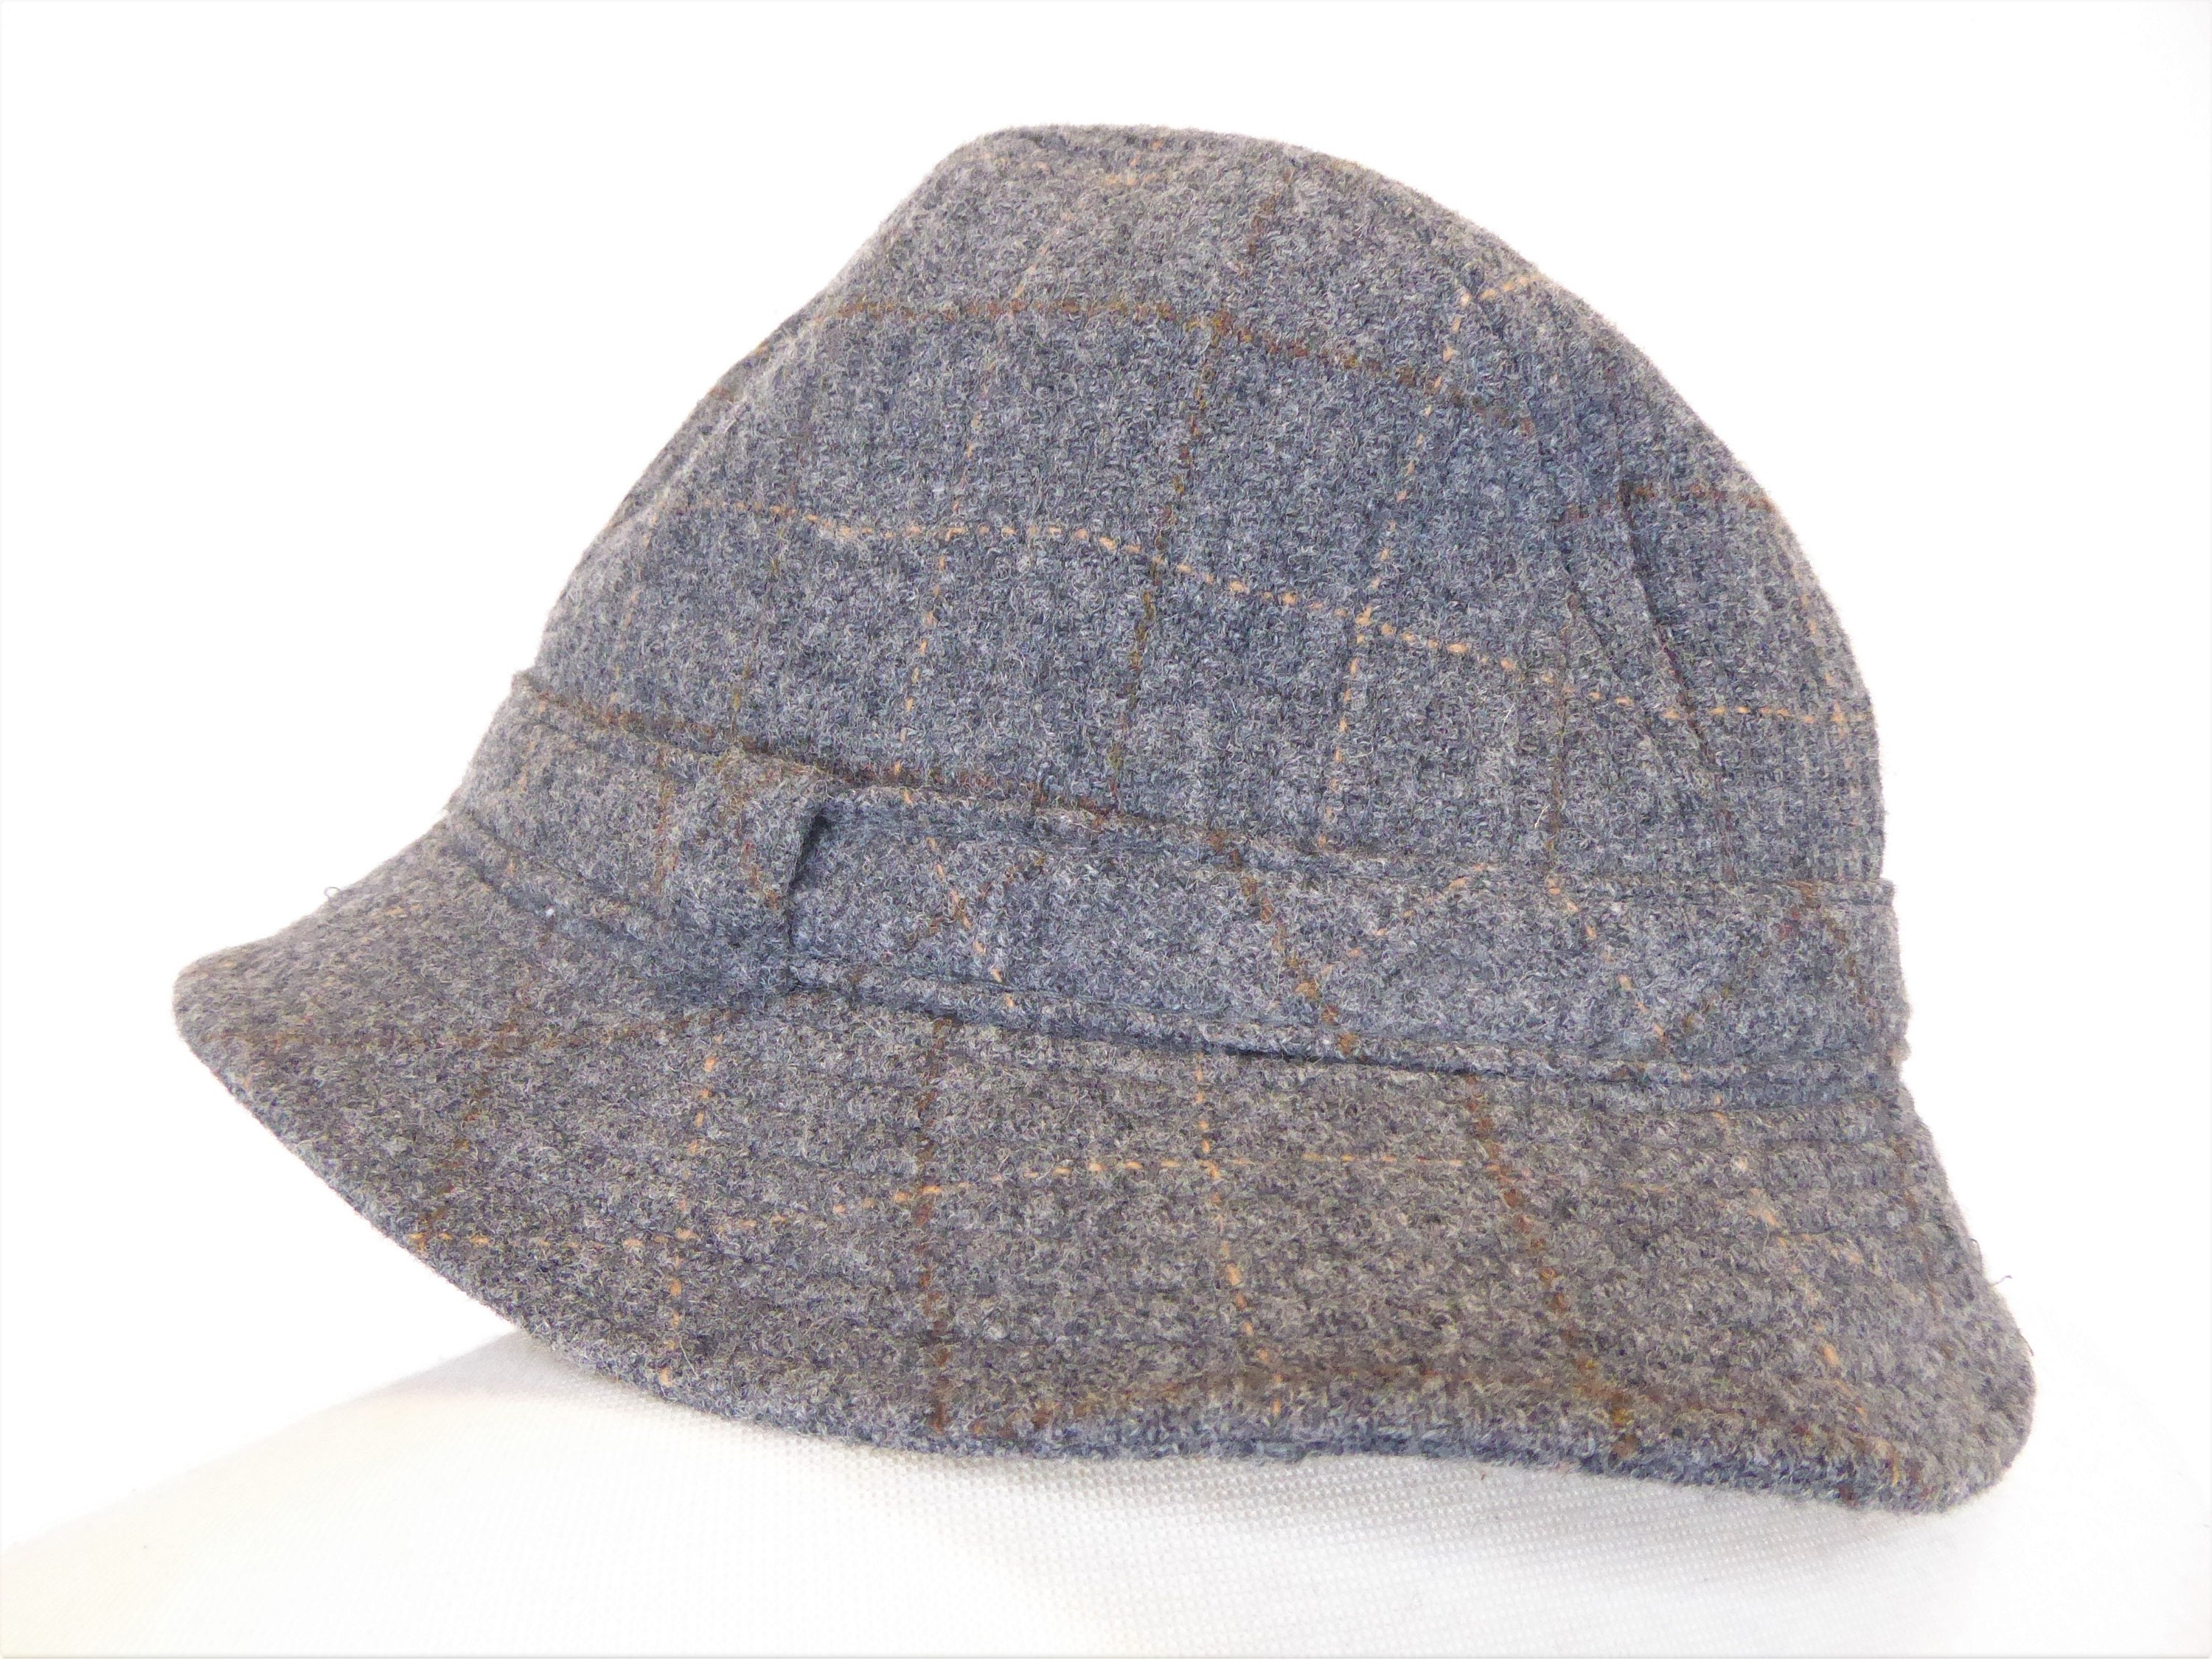 c1400ea542cc1d Pendleton Wool Bucket Hat, Vintage Gray Wool Fedora Style Hat, Size XL,  Made in USA